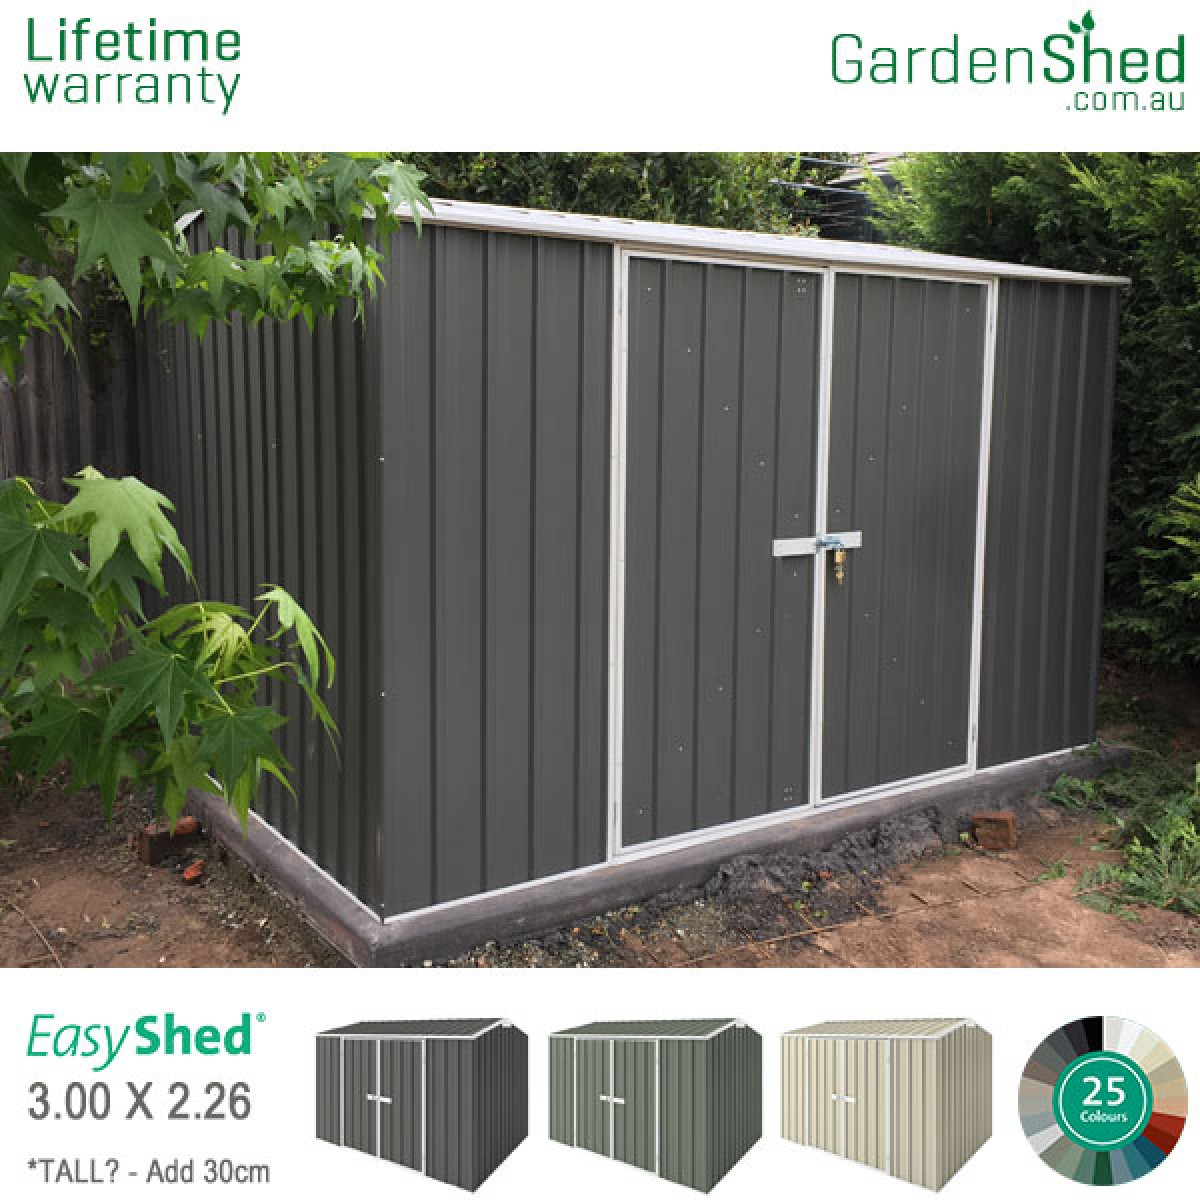 EasyShed Garden Shed 3m X 2.26m